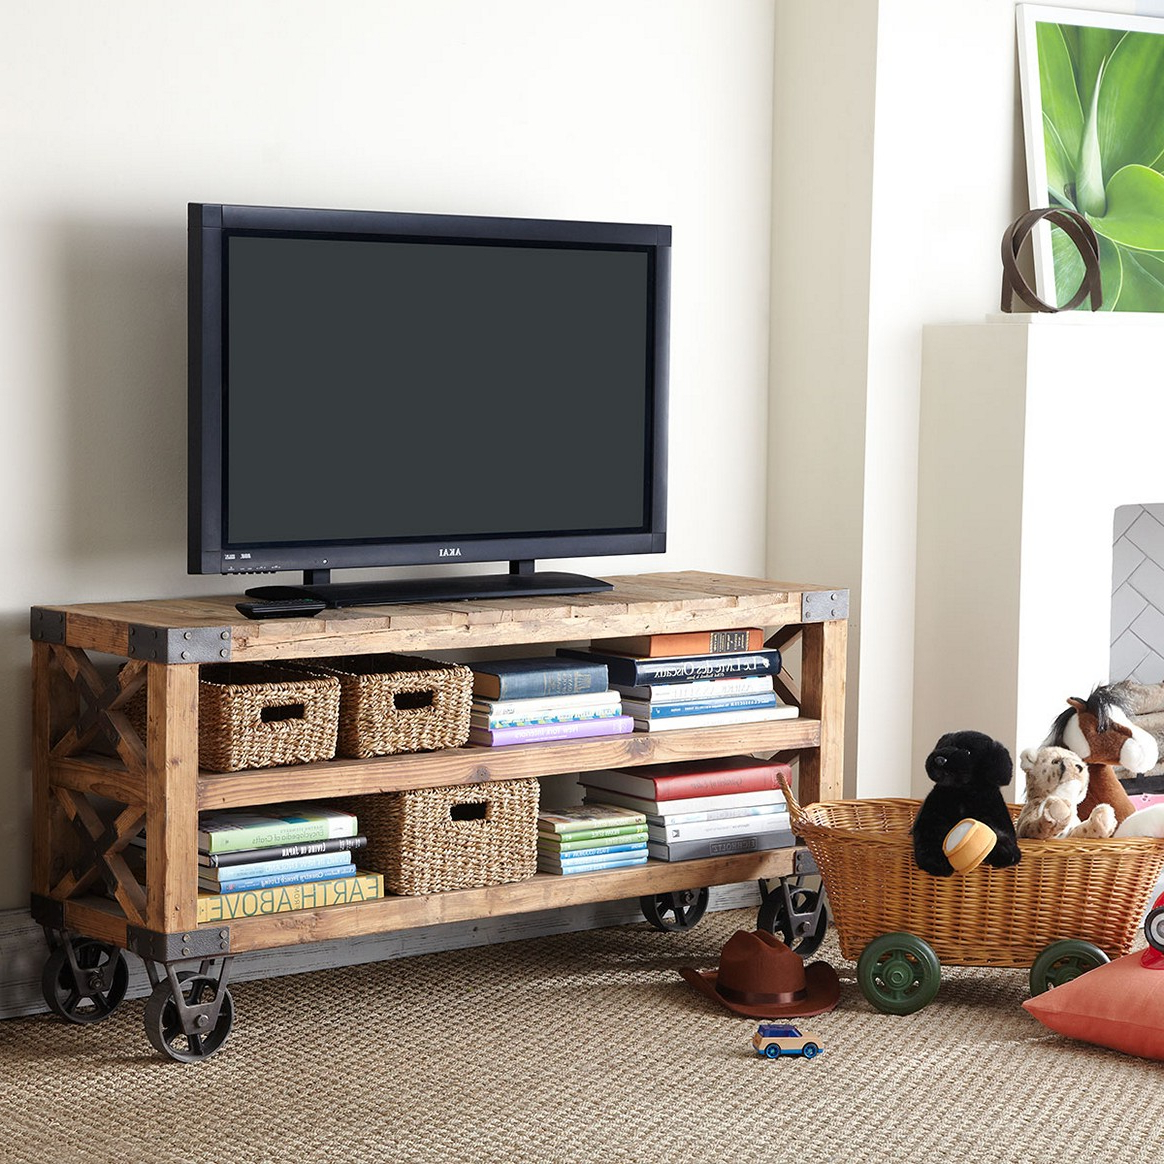 Most Popular 21+ Diy Tv Stand Ideas For Your Weekend Home Project Inside Unique Tv Stands For Flat Screens (Gallery 7 of 20)